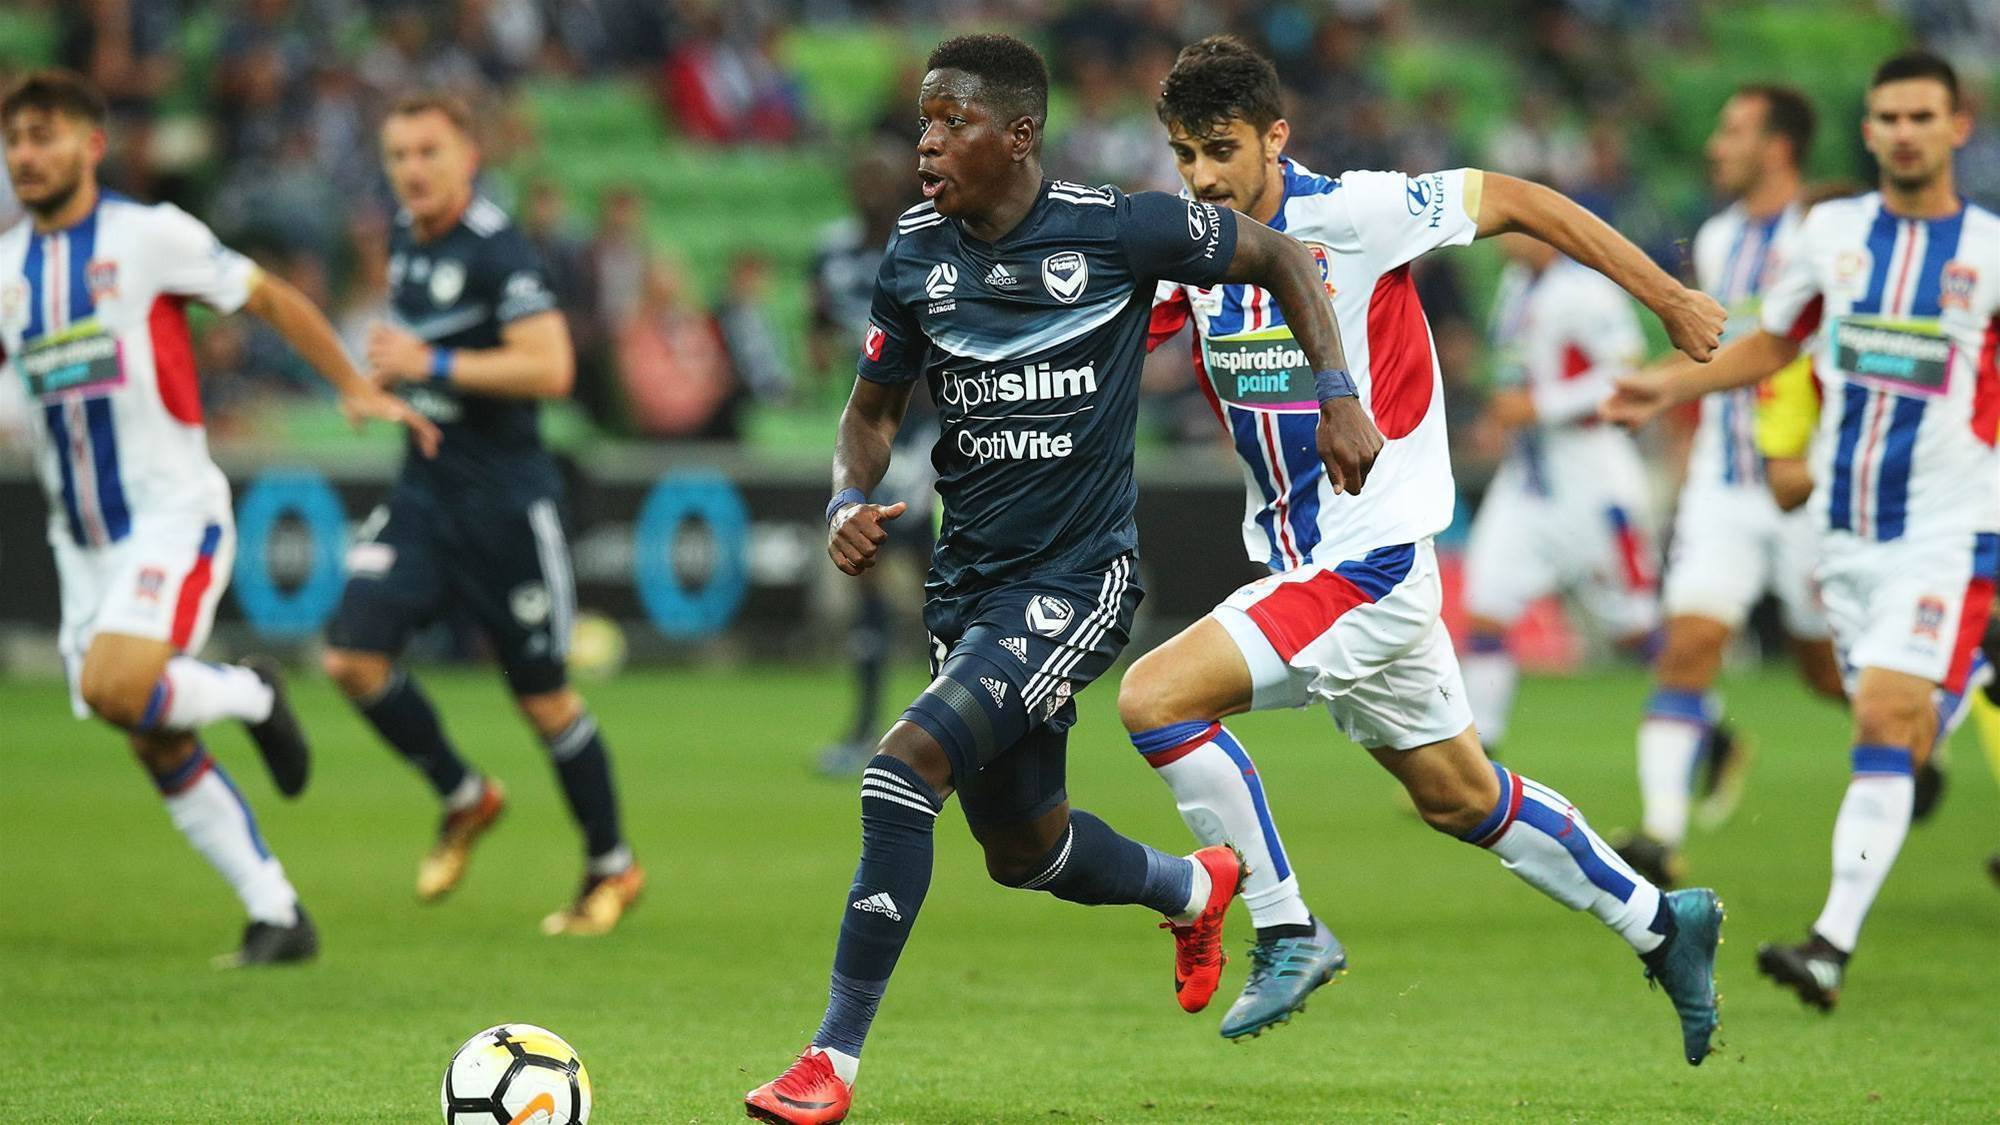 Melbourne Victory v Newcastle Jets player ratings